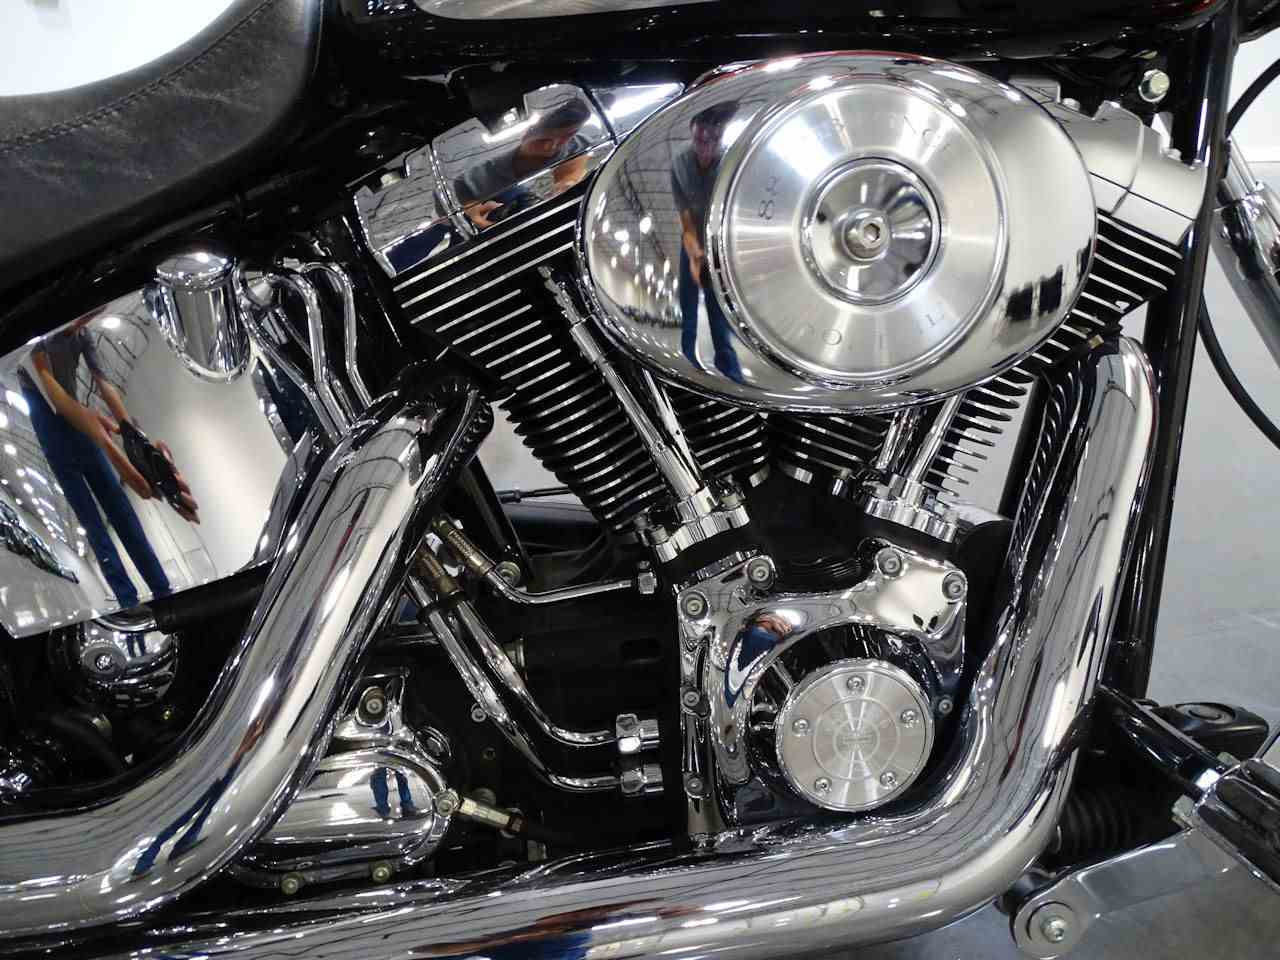 Large Picture of '01 Harley-Davidson FXSTDI located in Arizona Offered by Gateway Classic Cars - Scottsdale - M79F